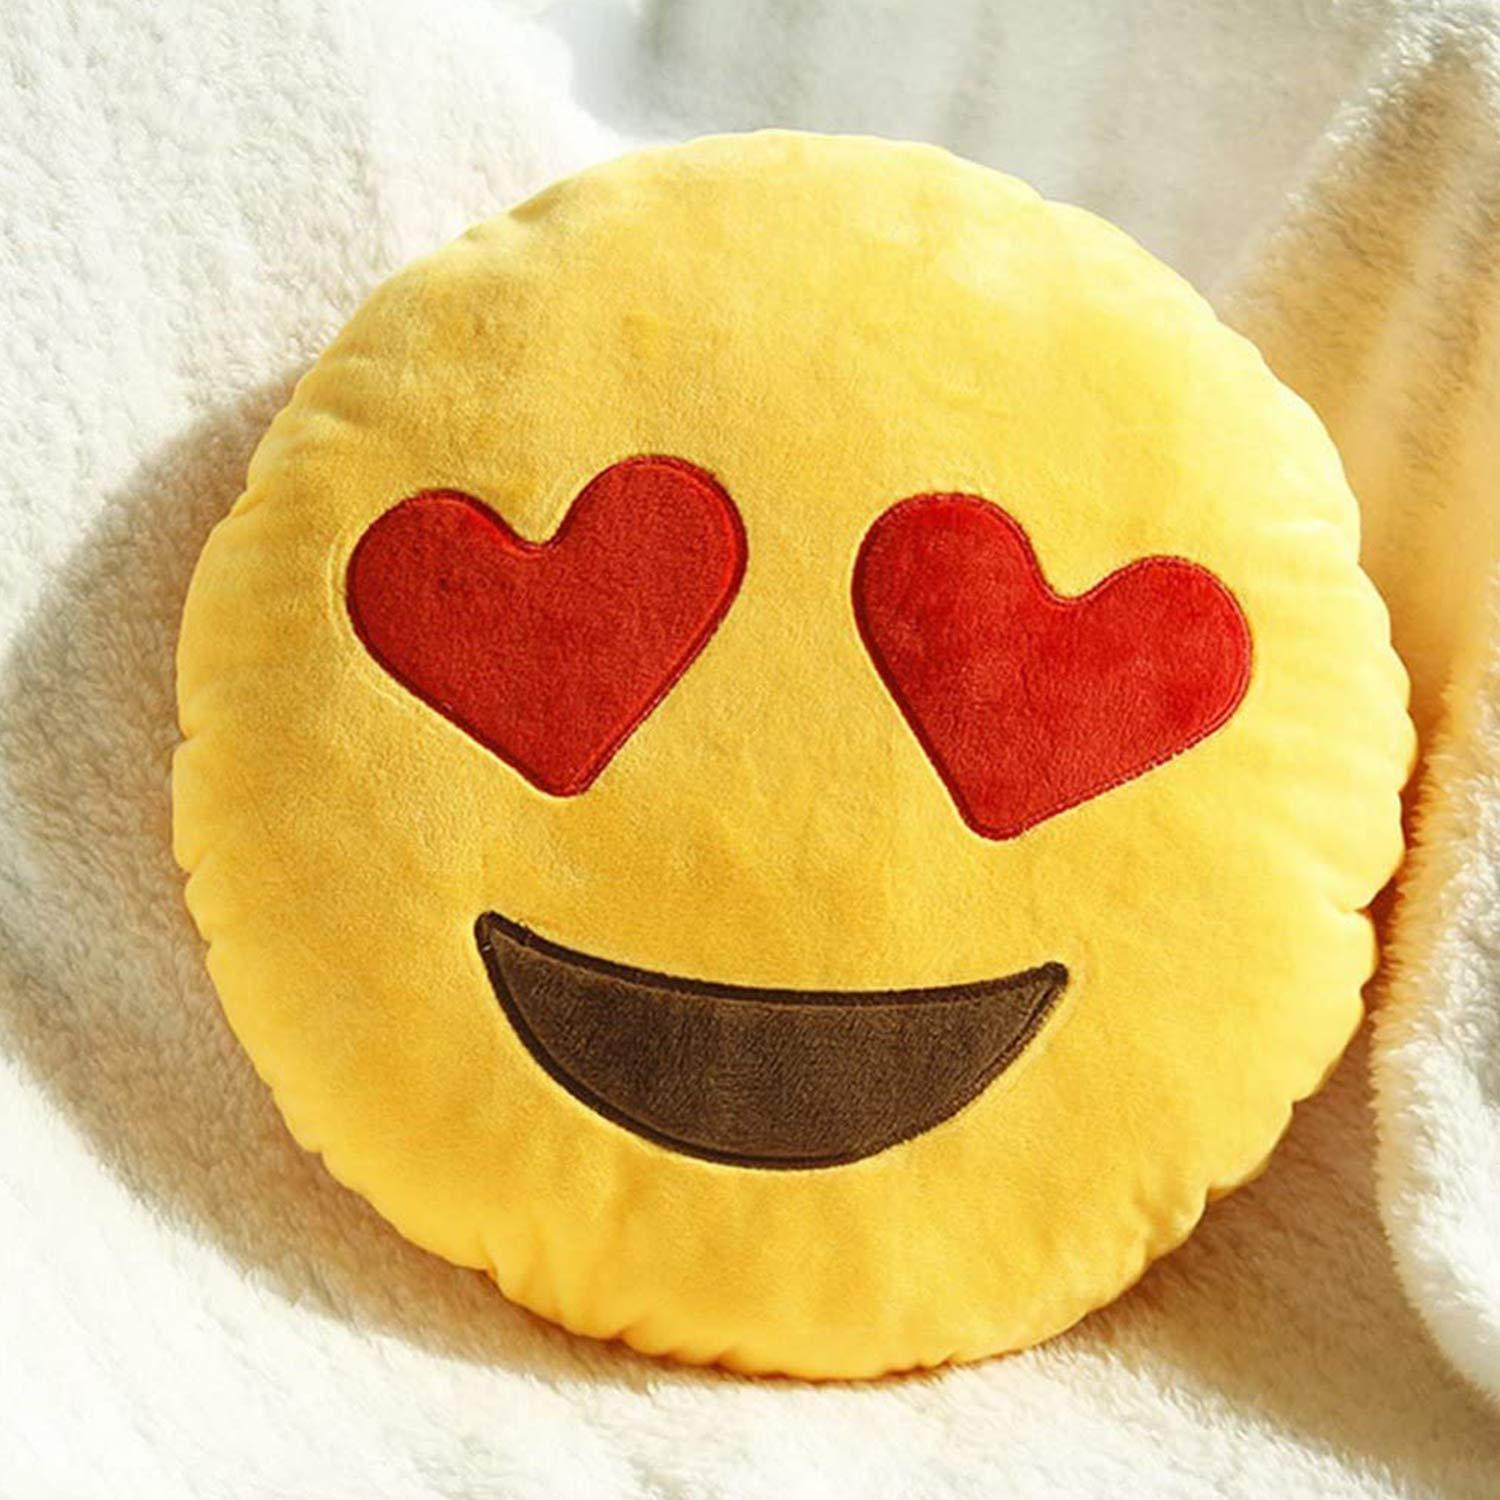 Kids Mandi Emoji Smiley Emotion Yellow Round Cushion Stuffed Plush Soft Pillow - Small Size